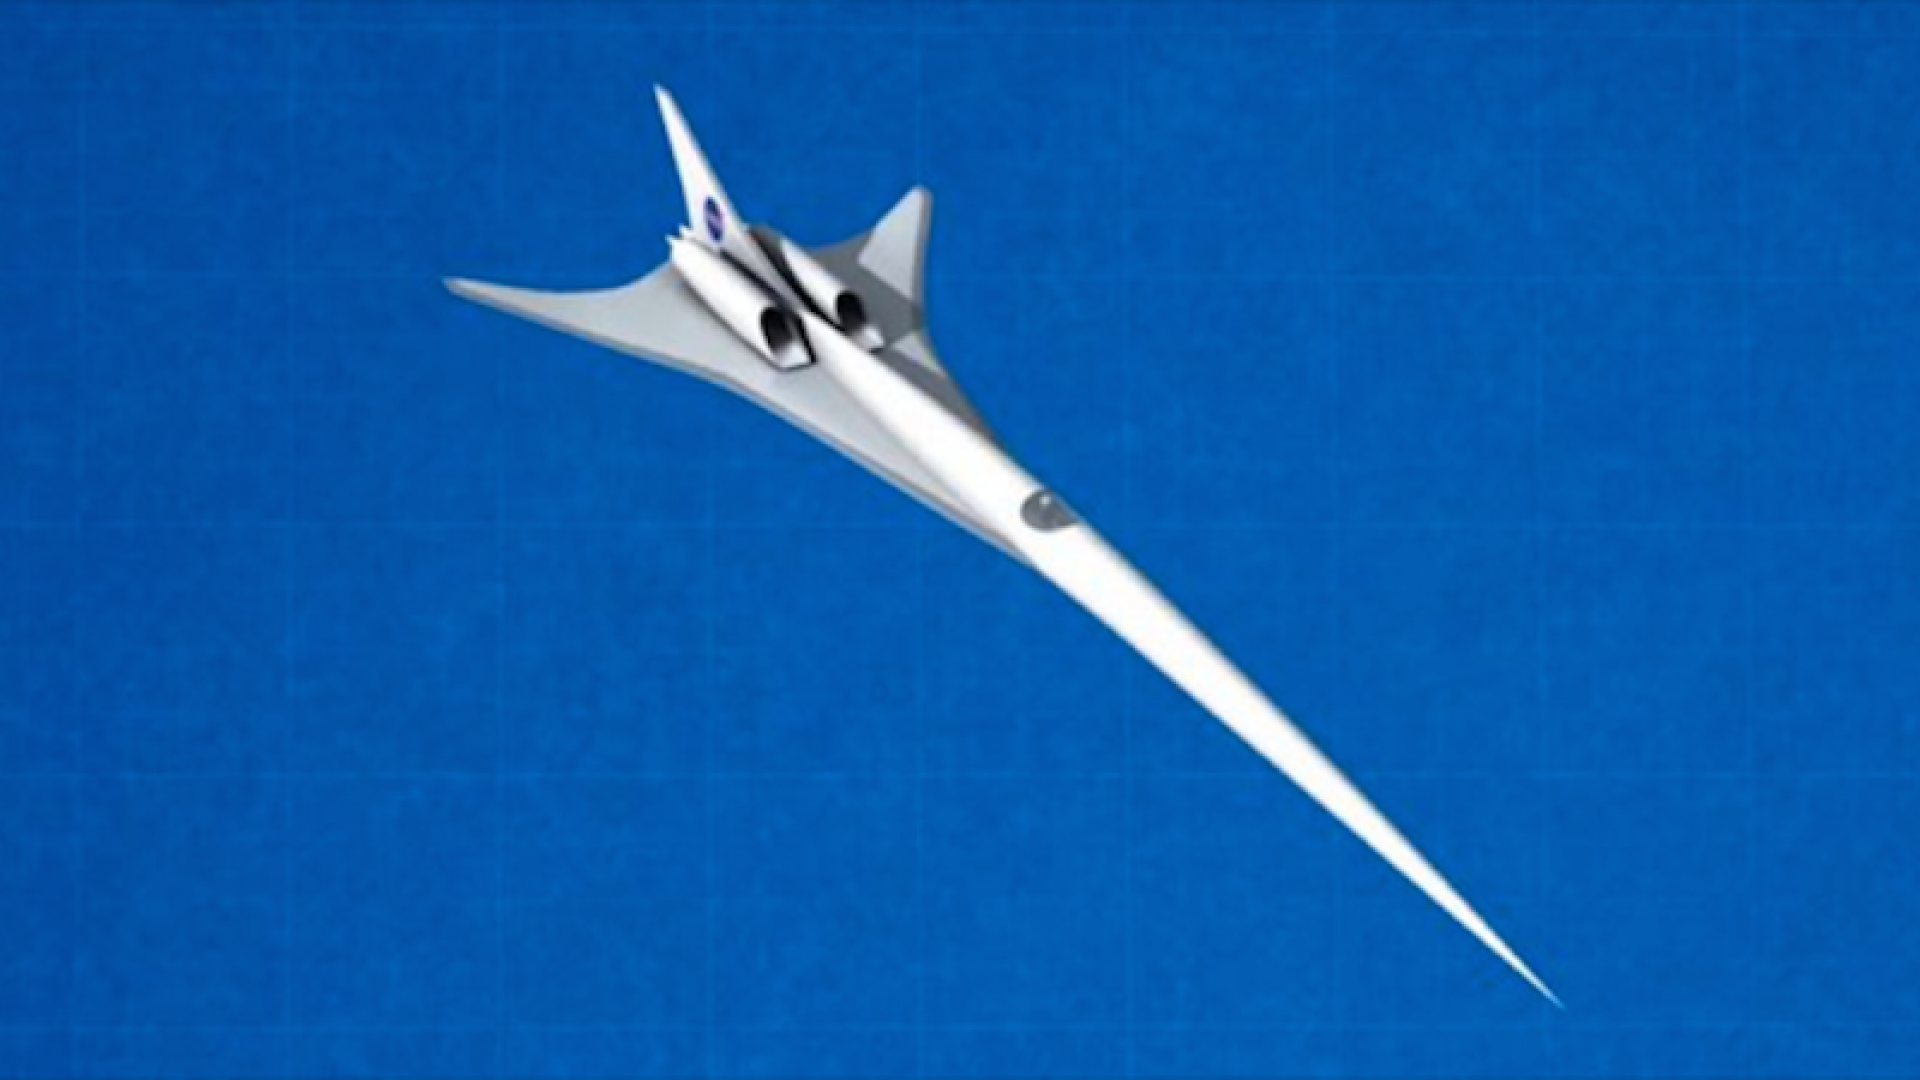 A rendering of NASA's proposed X-Plane supersonic jet.